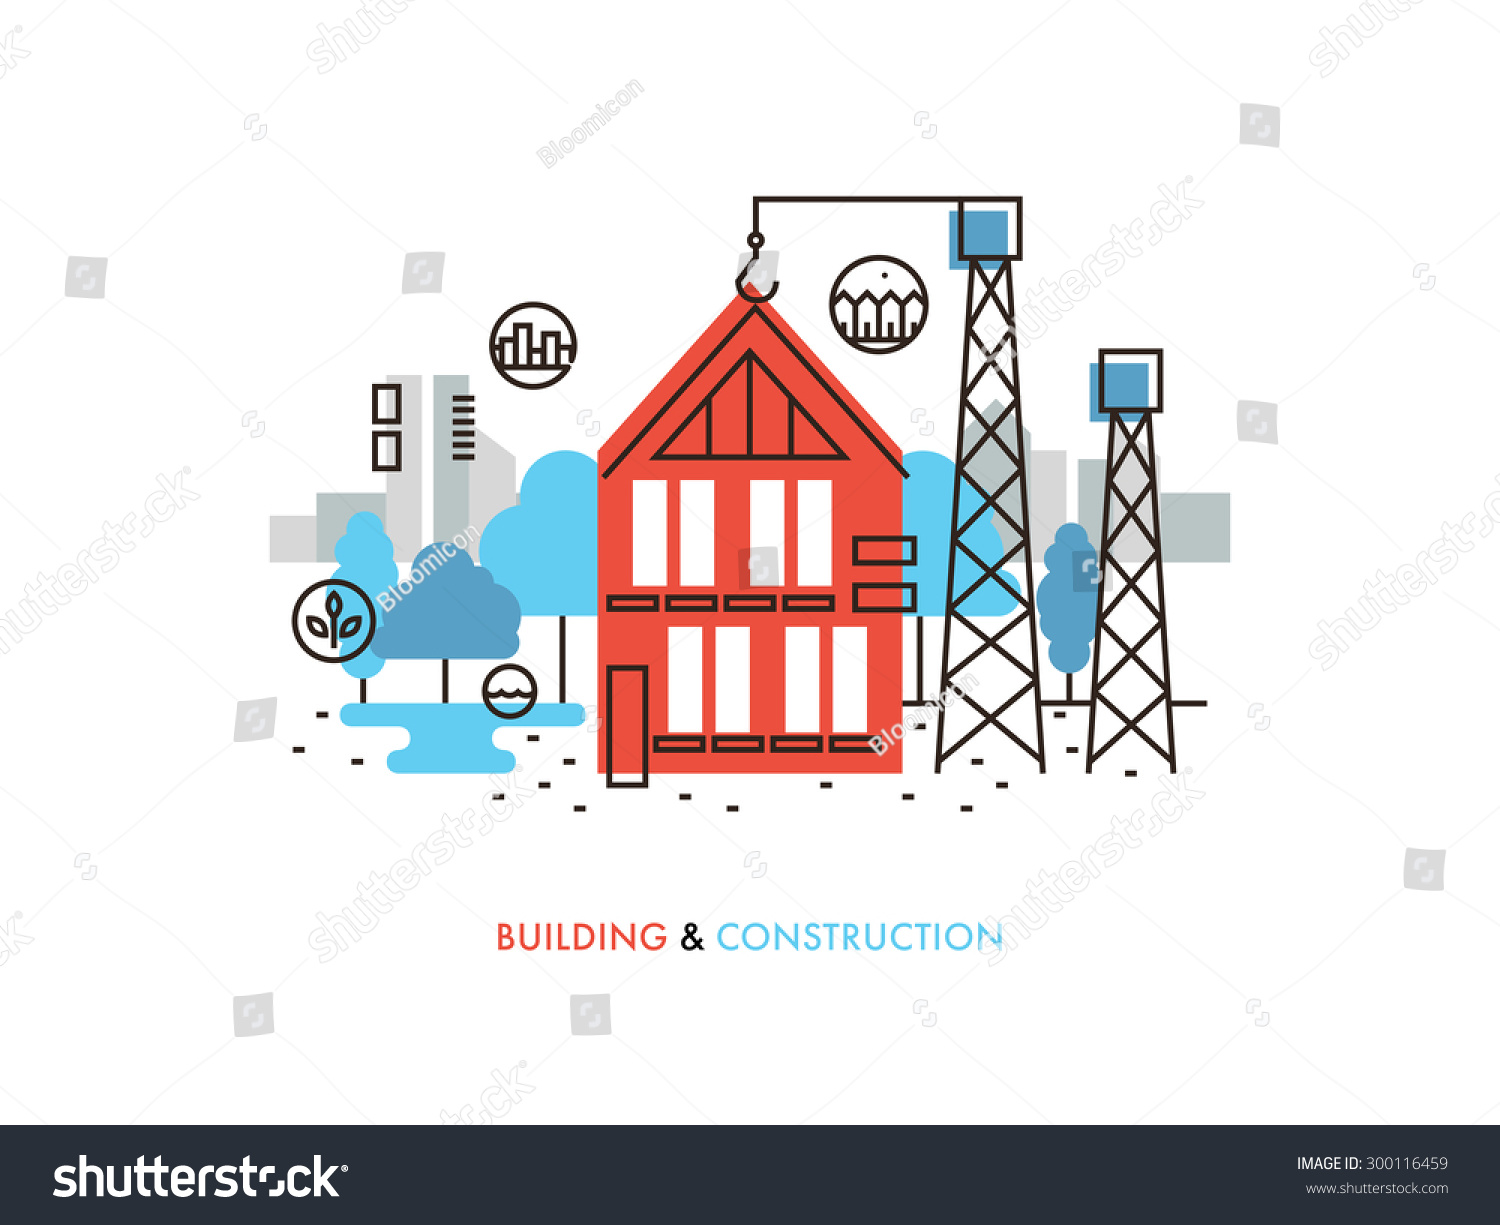 Thin line flat design constructing building stock vector for Process of building a new house